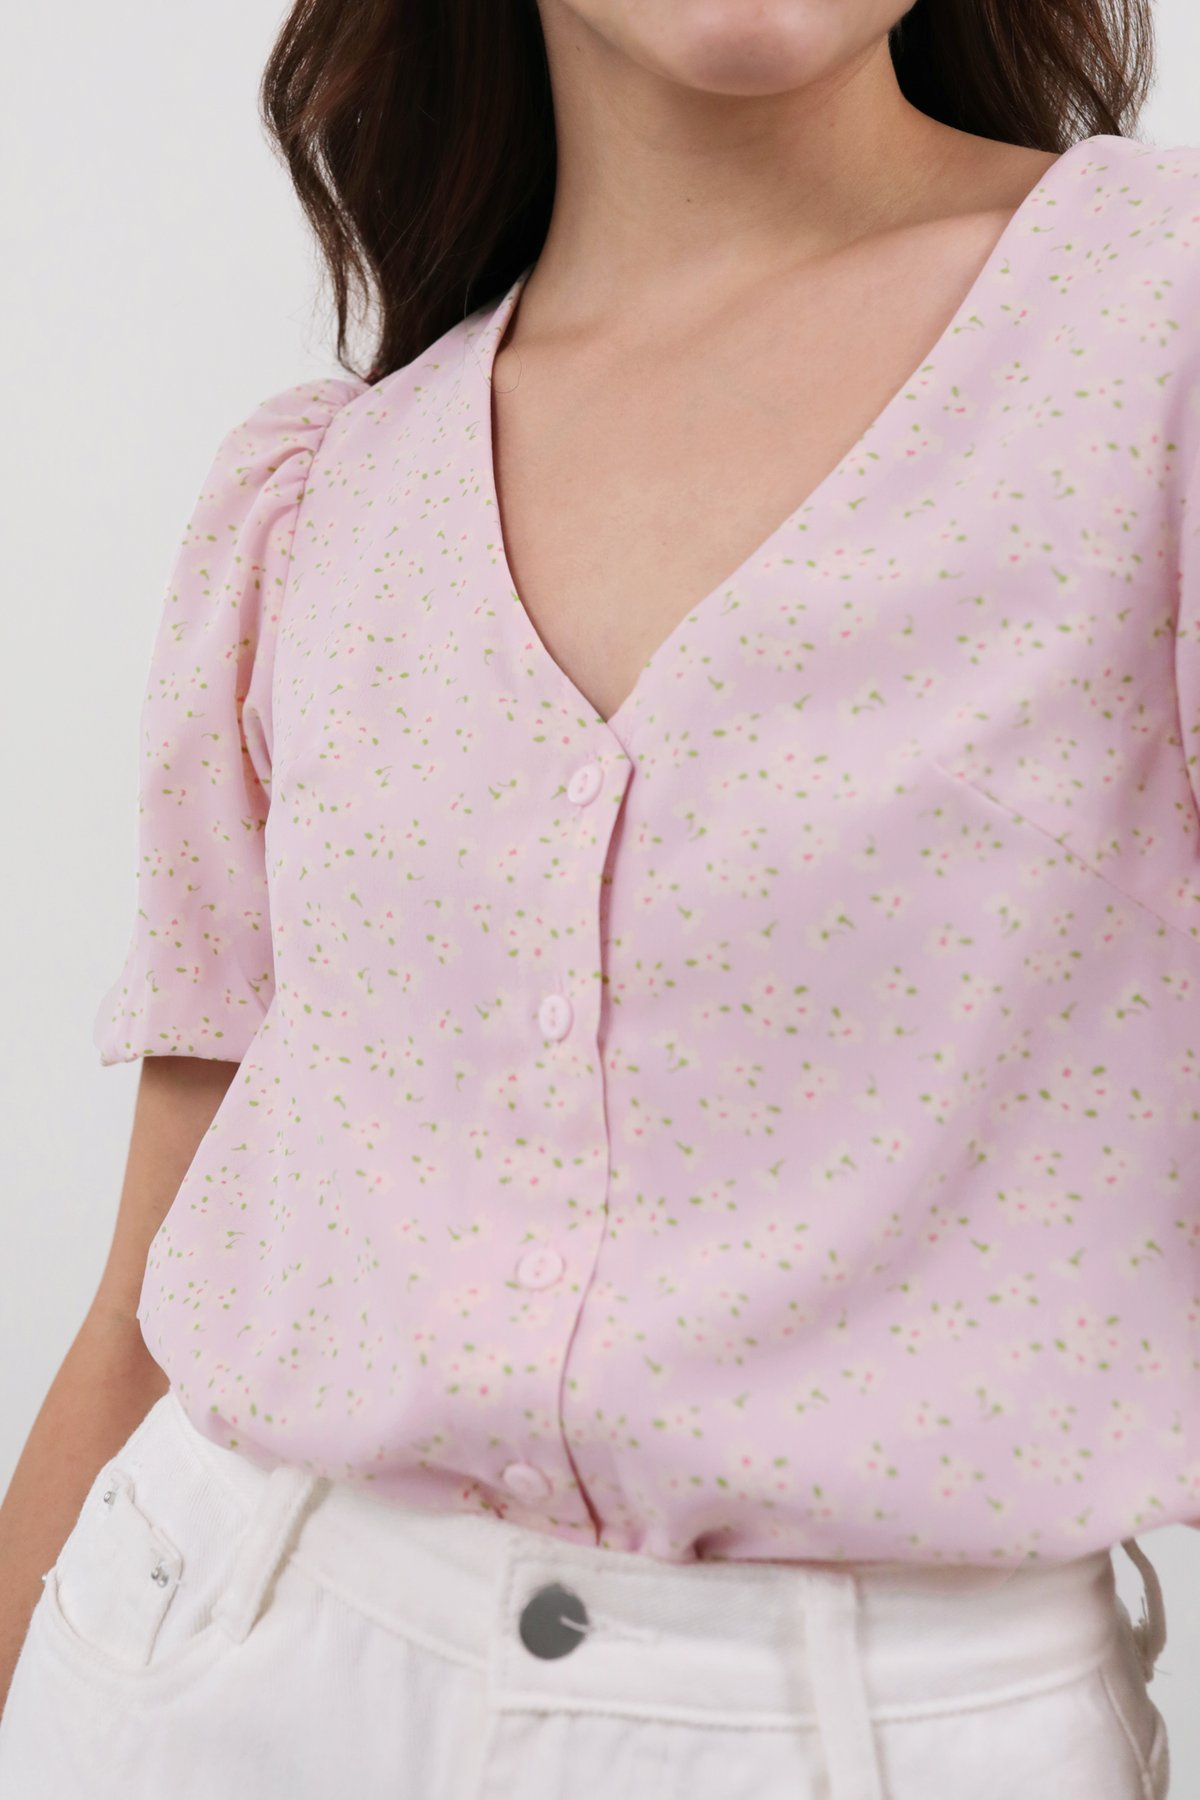 Elora Puffy Sleeved Top (Pink Daisy)